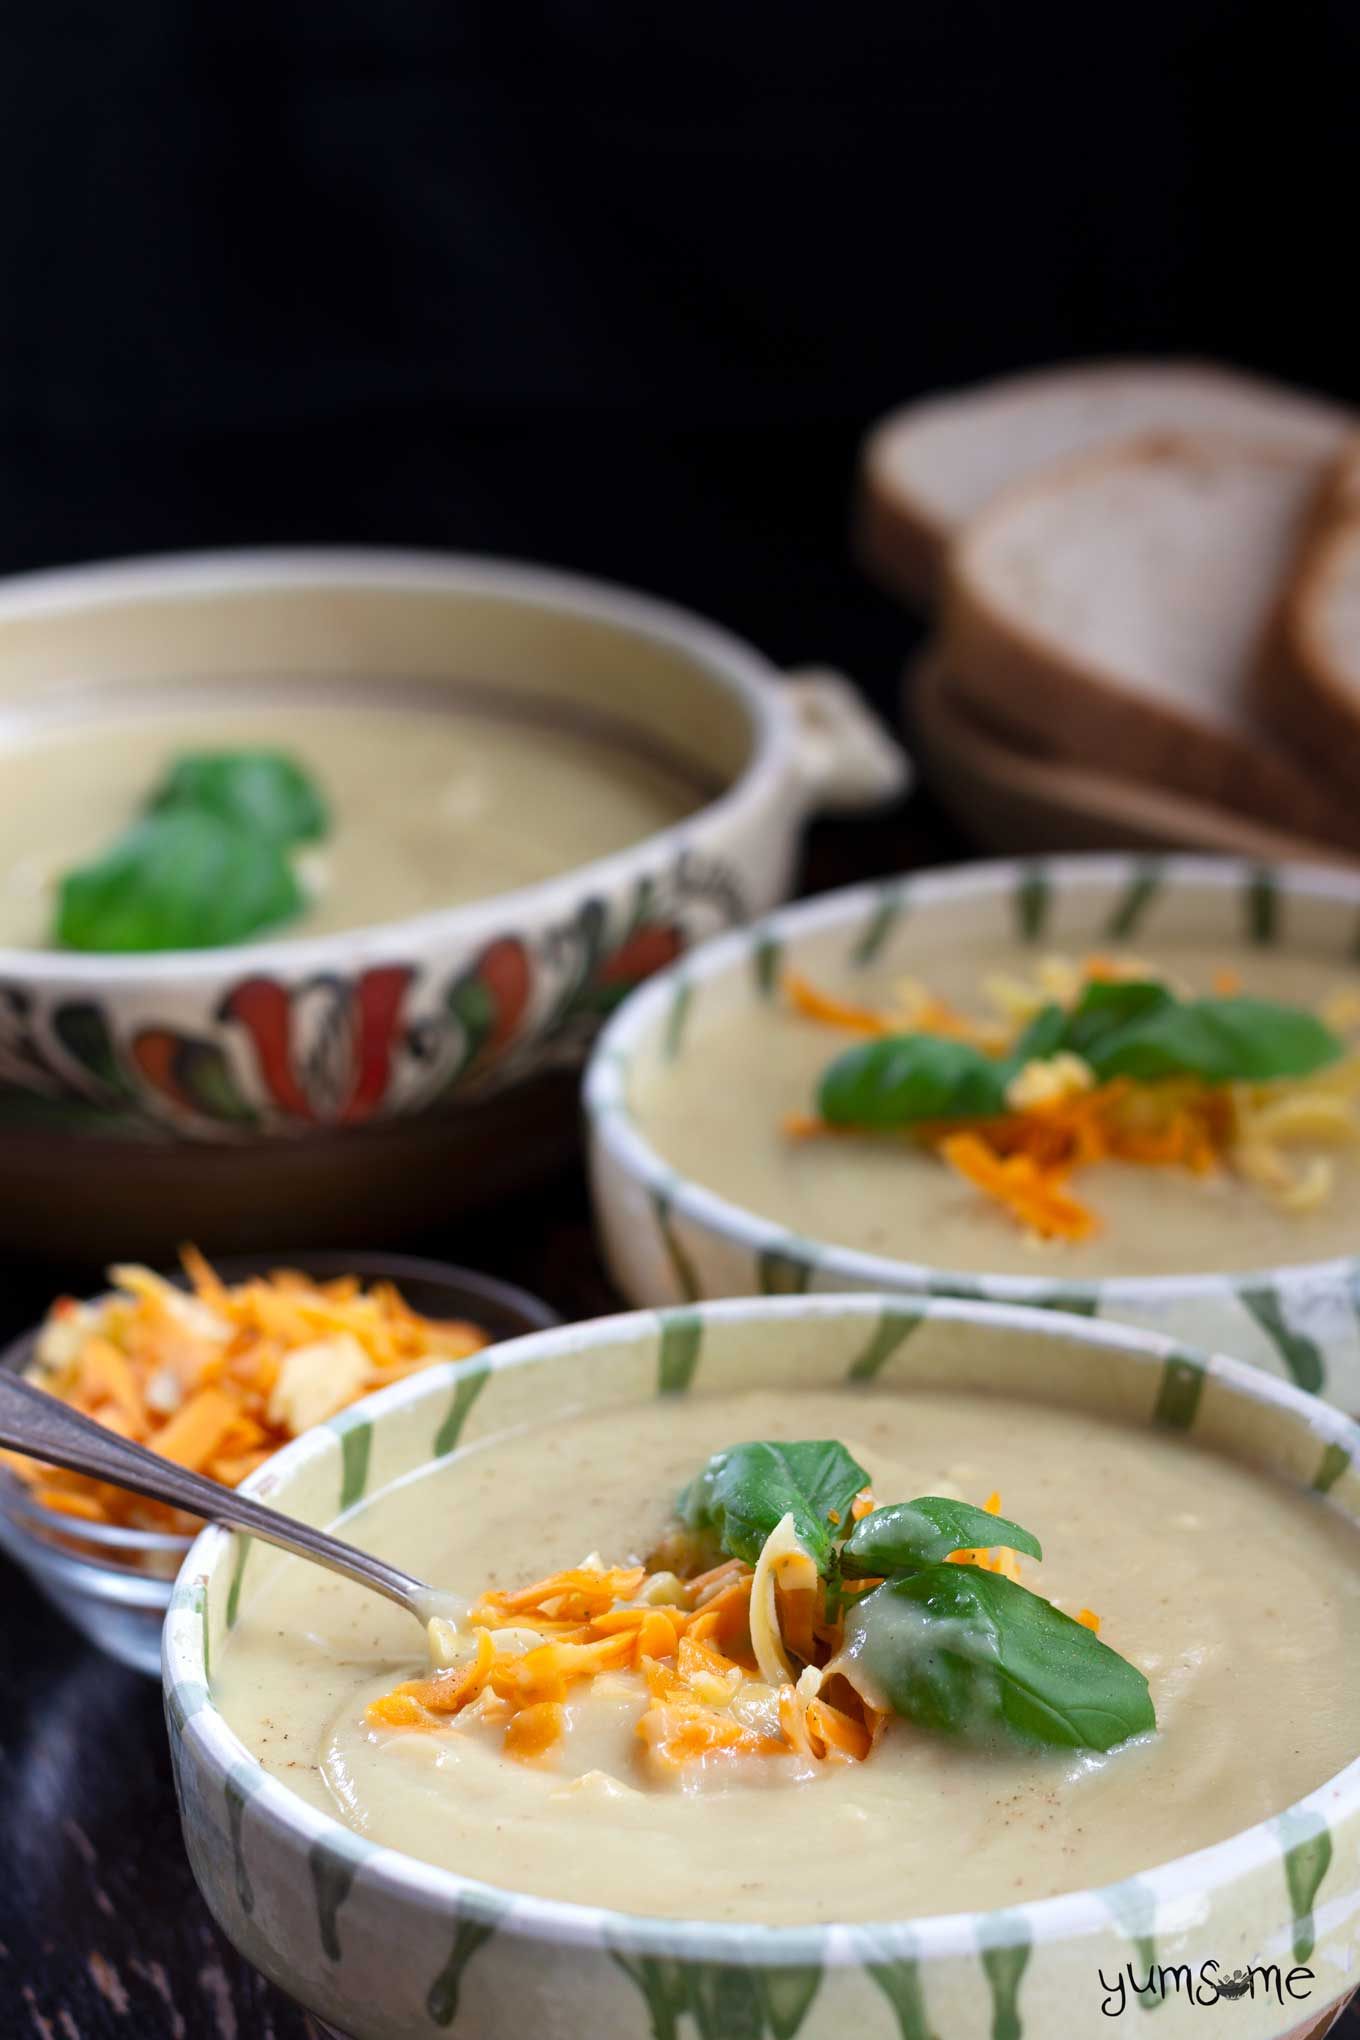 Several bowls of vegan cauliflower cheese soup, garnished with herbs and grated cheese, against a dark background.